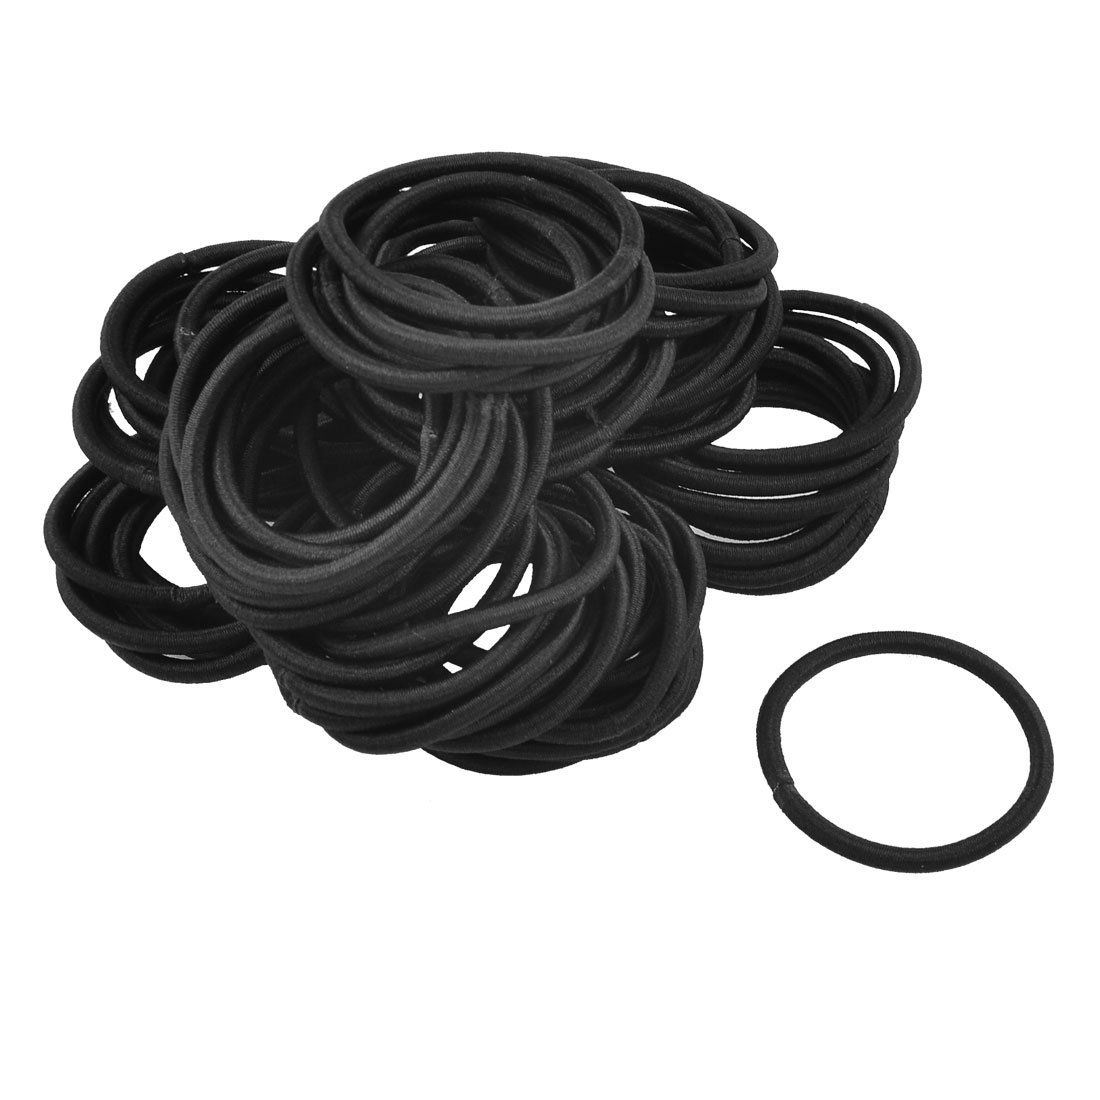 HOT New Beautiful 80 Pcs Black Elastic Rubber Hair Band Ponytail Holders for Lady beautiful darkness